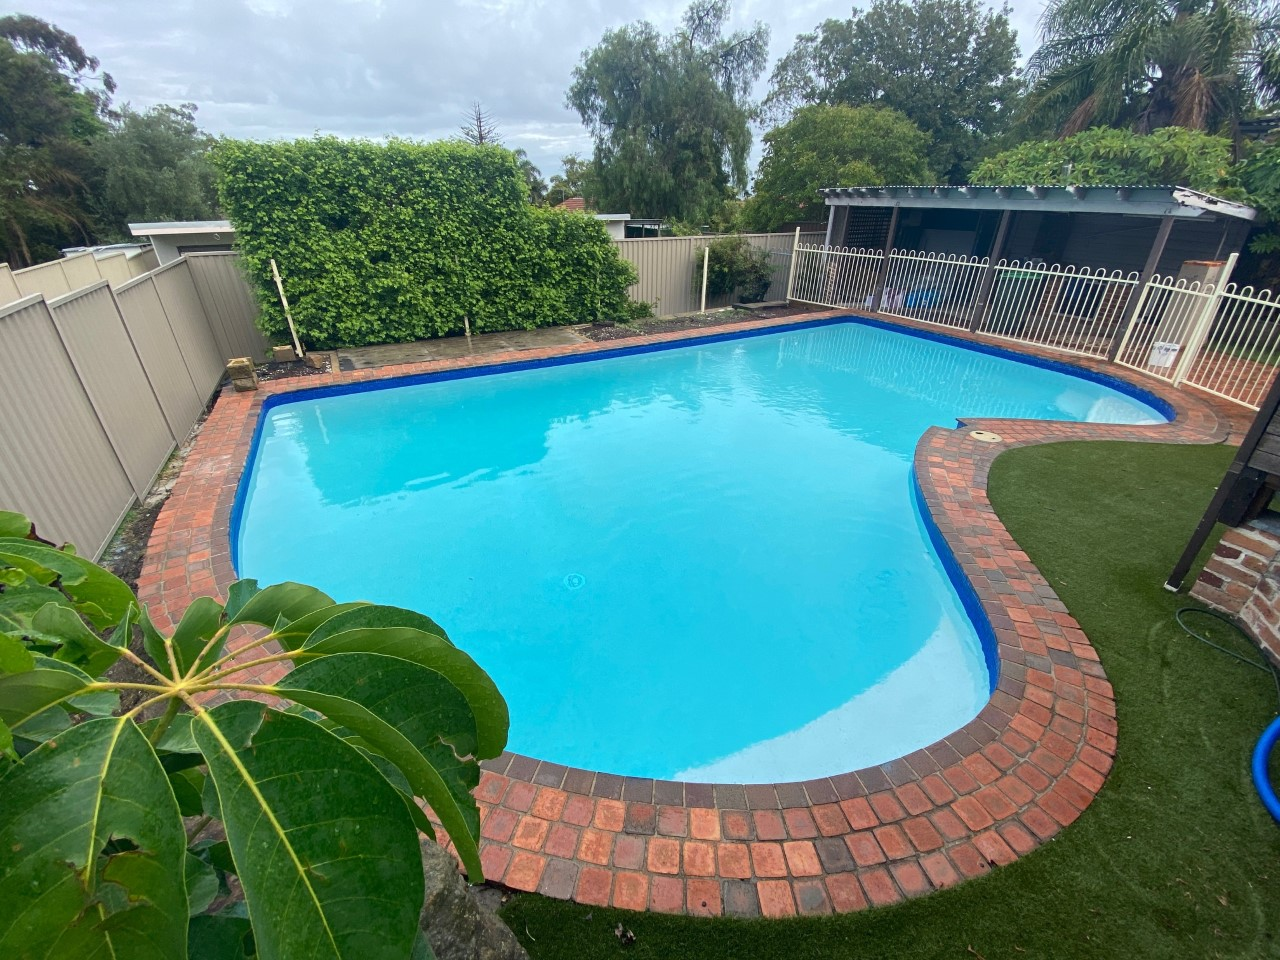 Pool renovation completion, blue water with a beautiful plant in the foreground.